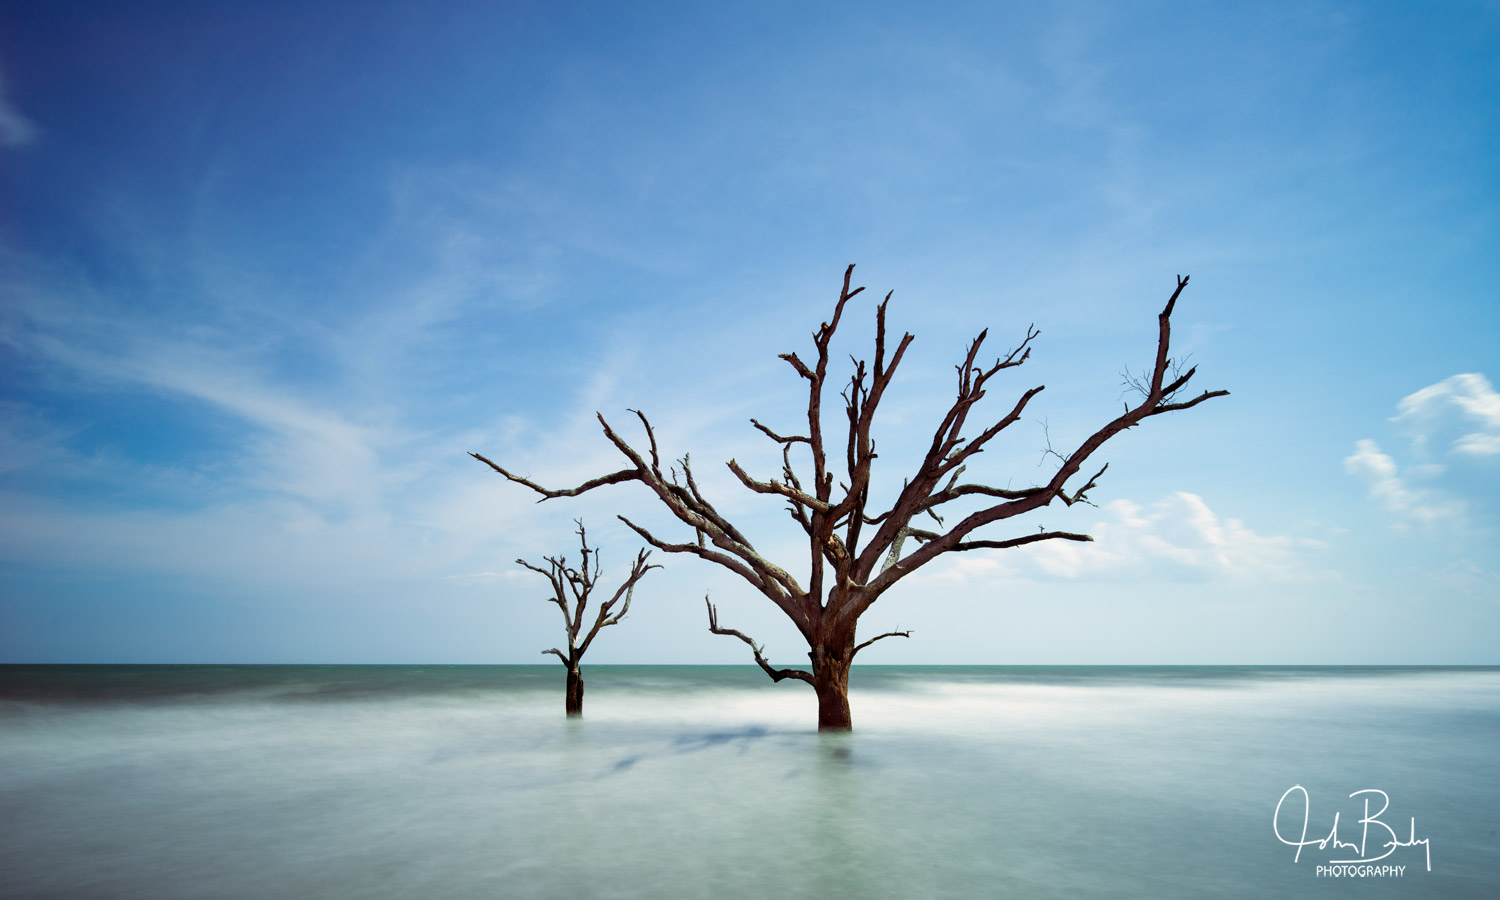 South Carolina, deist island, botany bay, oak trees standing in the ocean, abstract, photography, photo